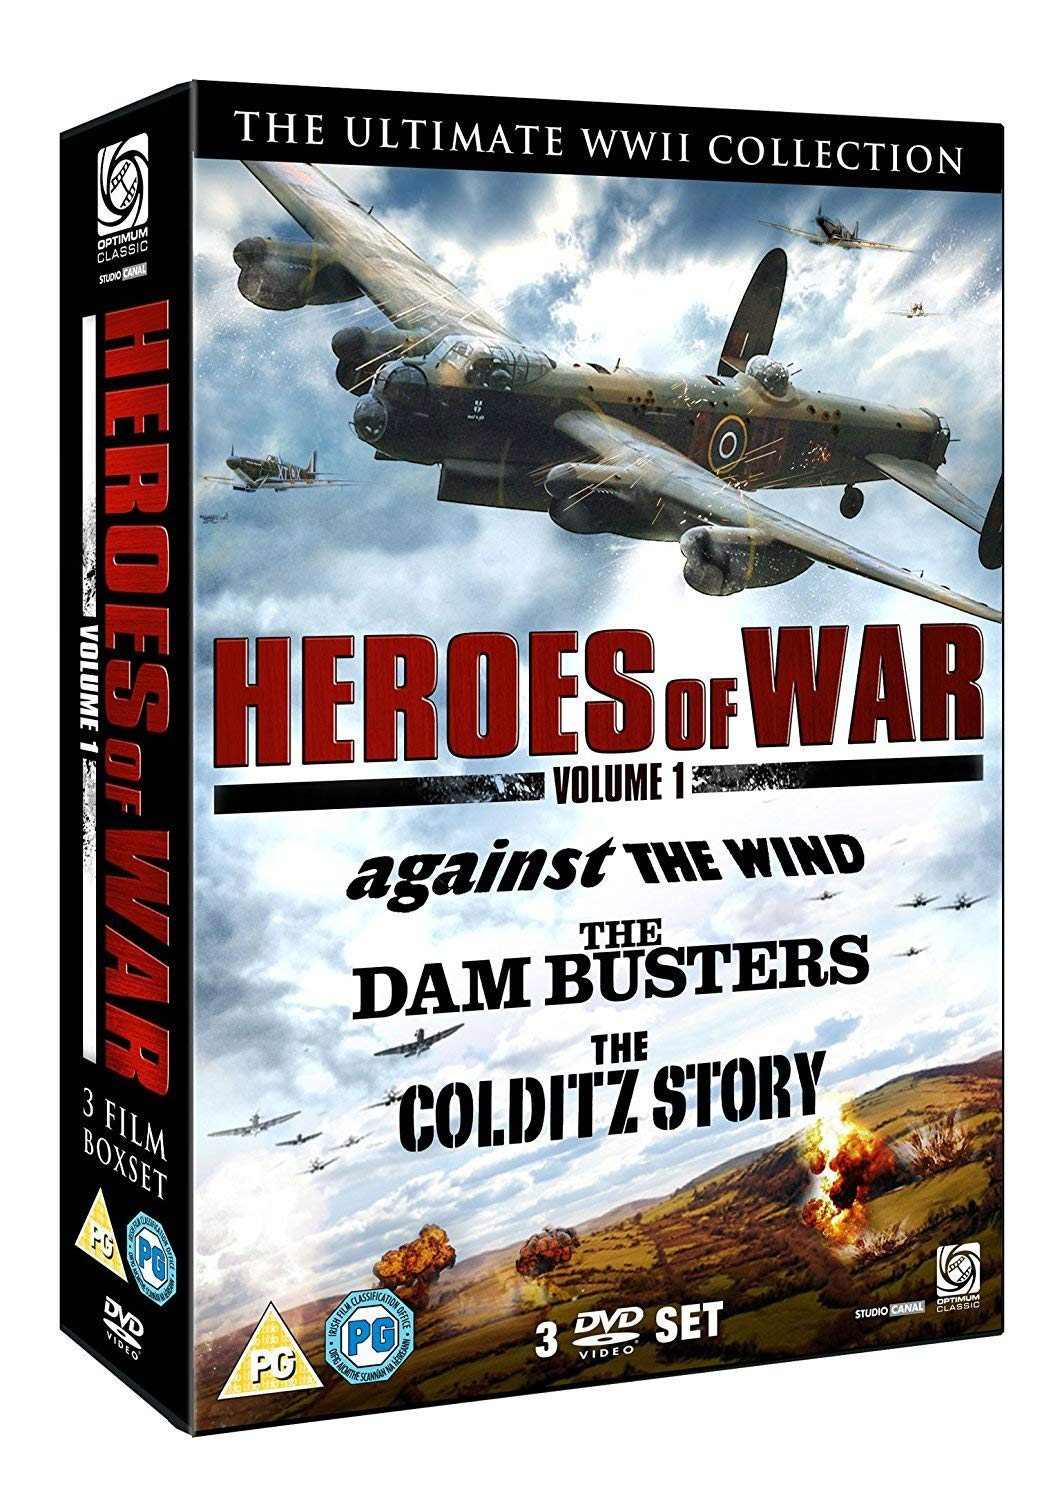 Heroes Of War Vol 1 (Dambusters  The/Against The Wind/Colditz Story) (DVD)